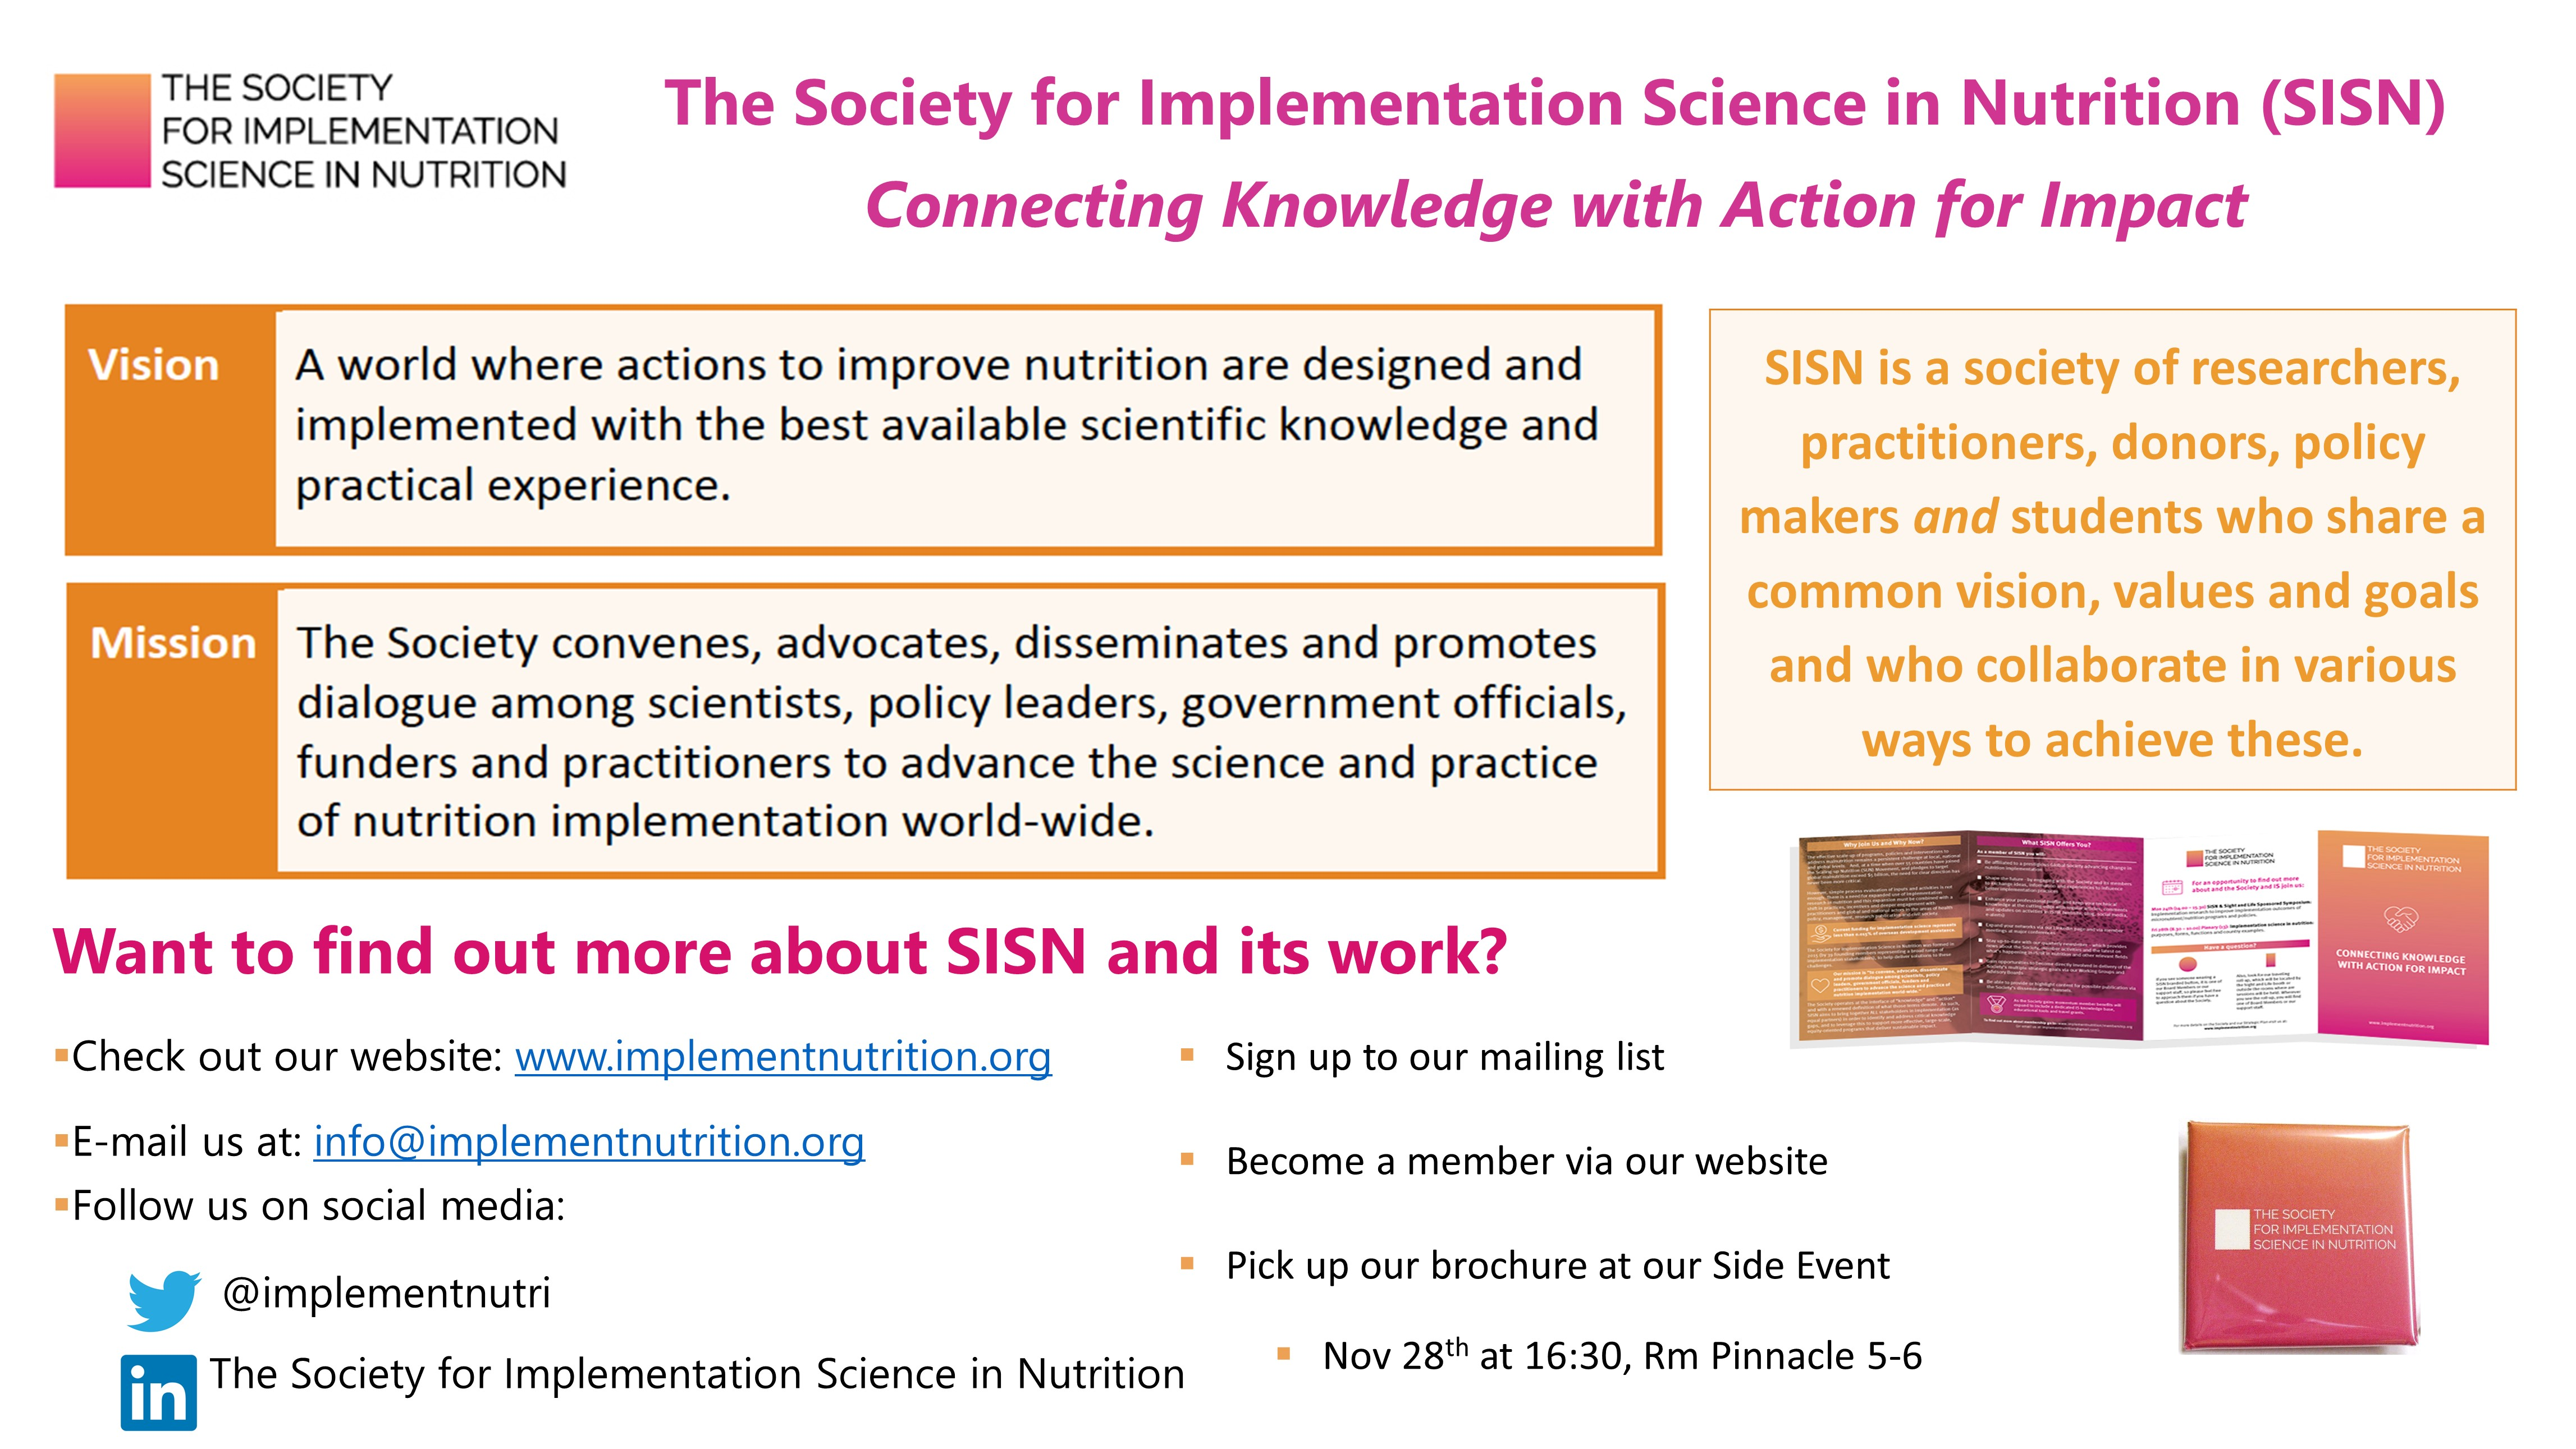 The Society for Implementation Science in Nutrition (SISN): Connecting Knowledge with Action for Impact